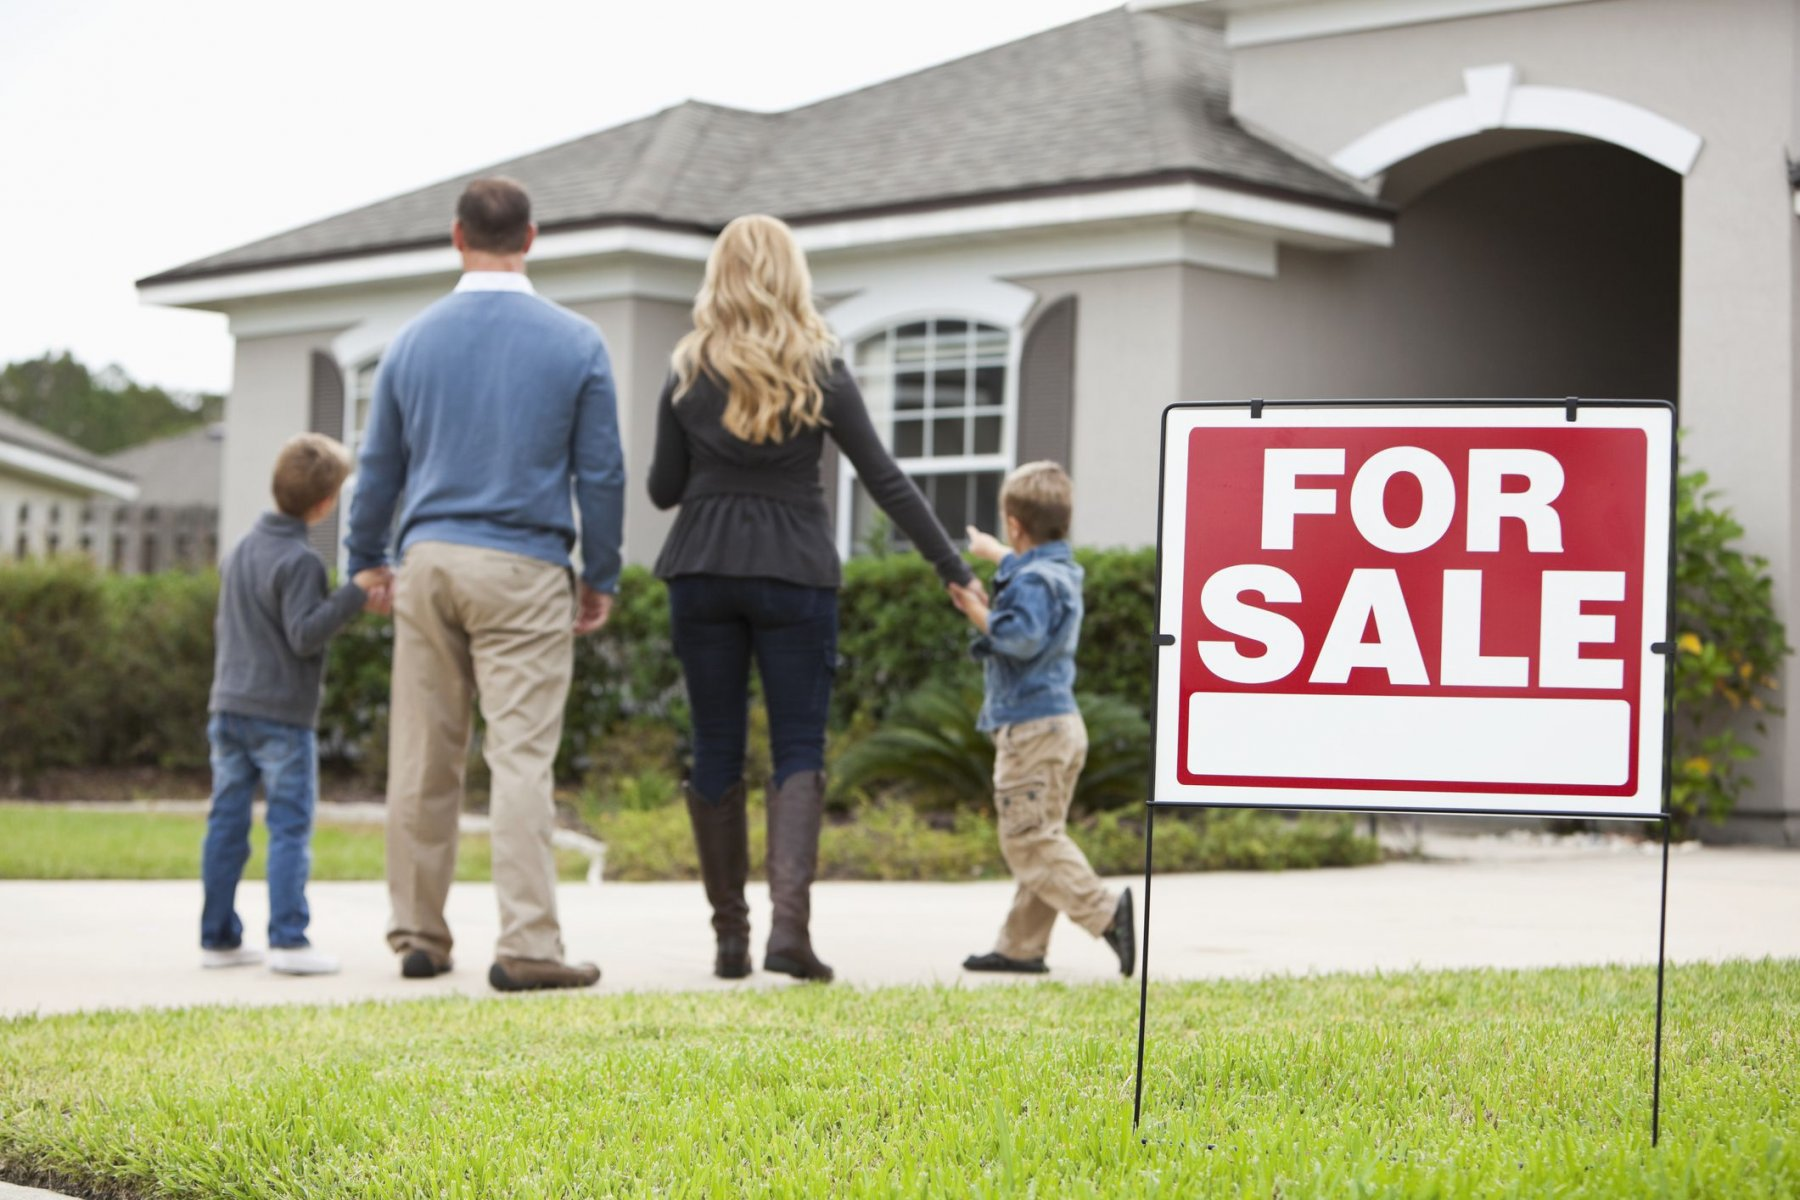 How Do I Sell My House Without An Agent Locally?